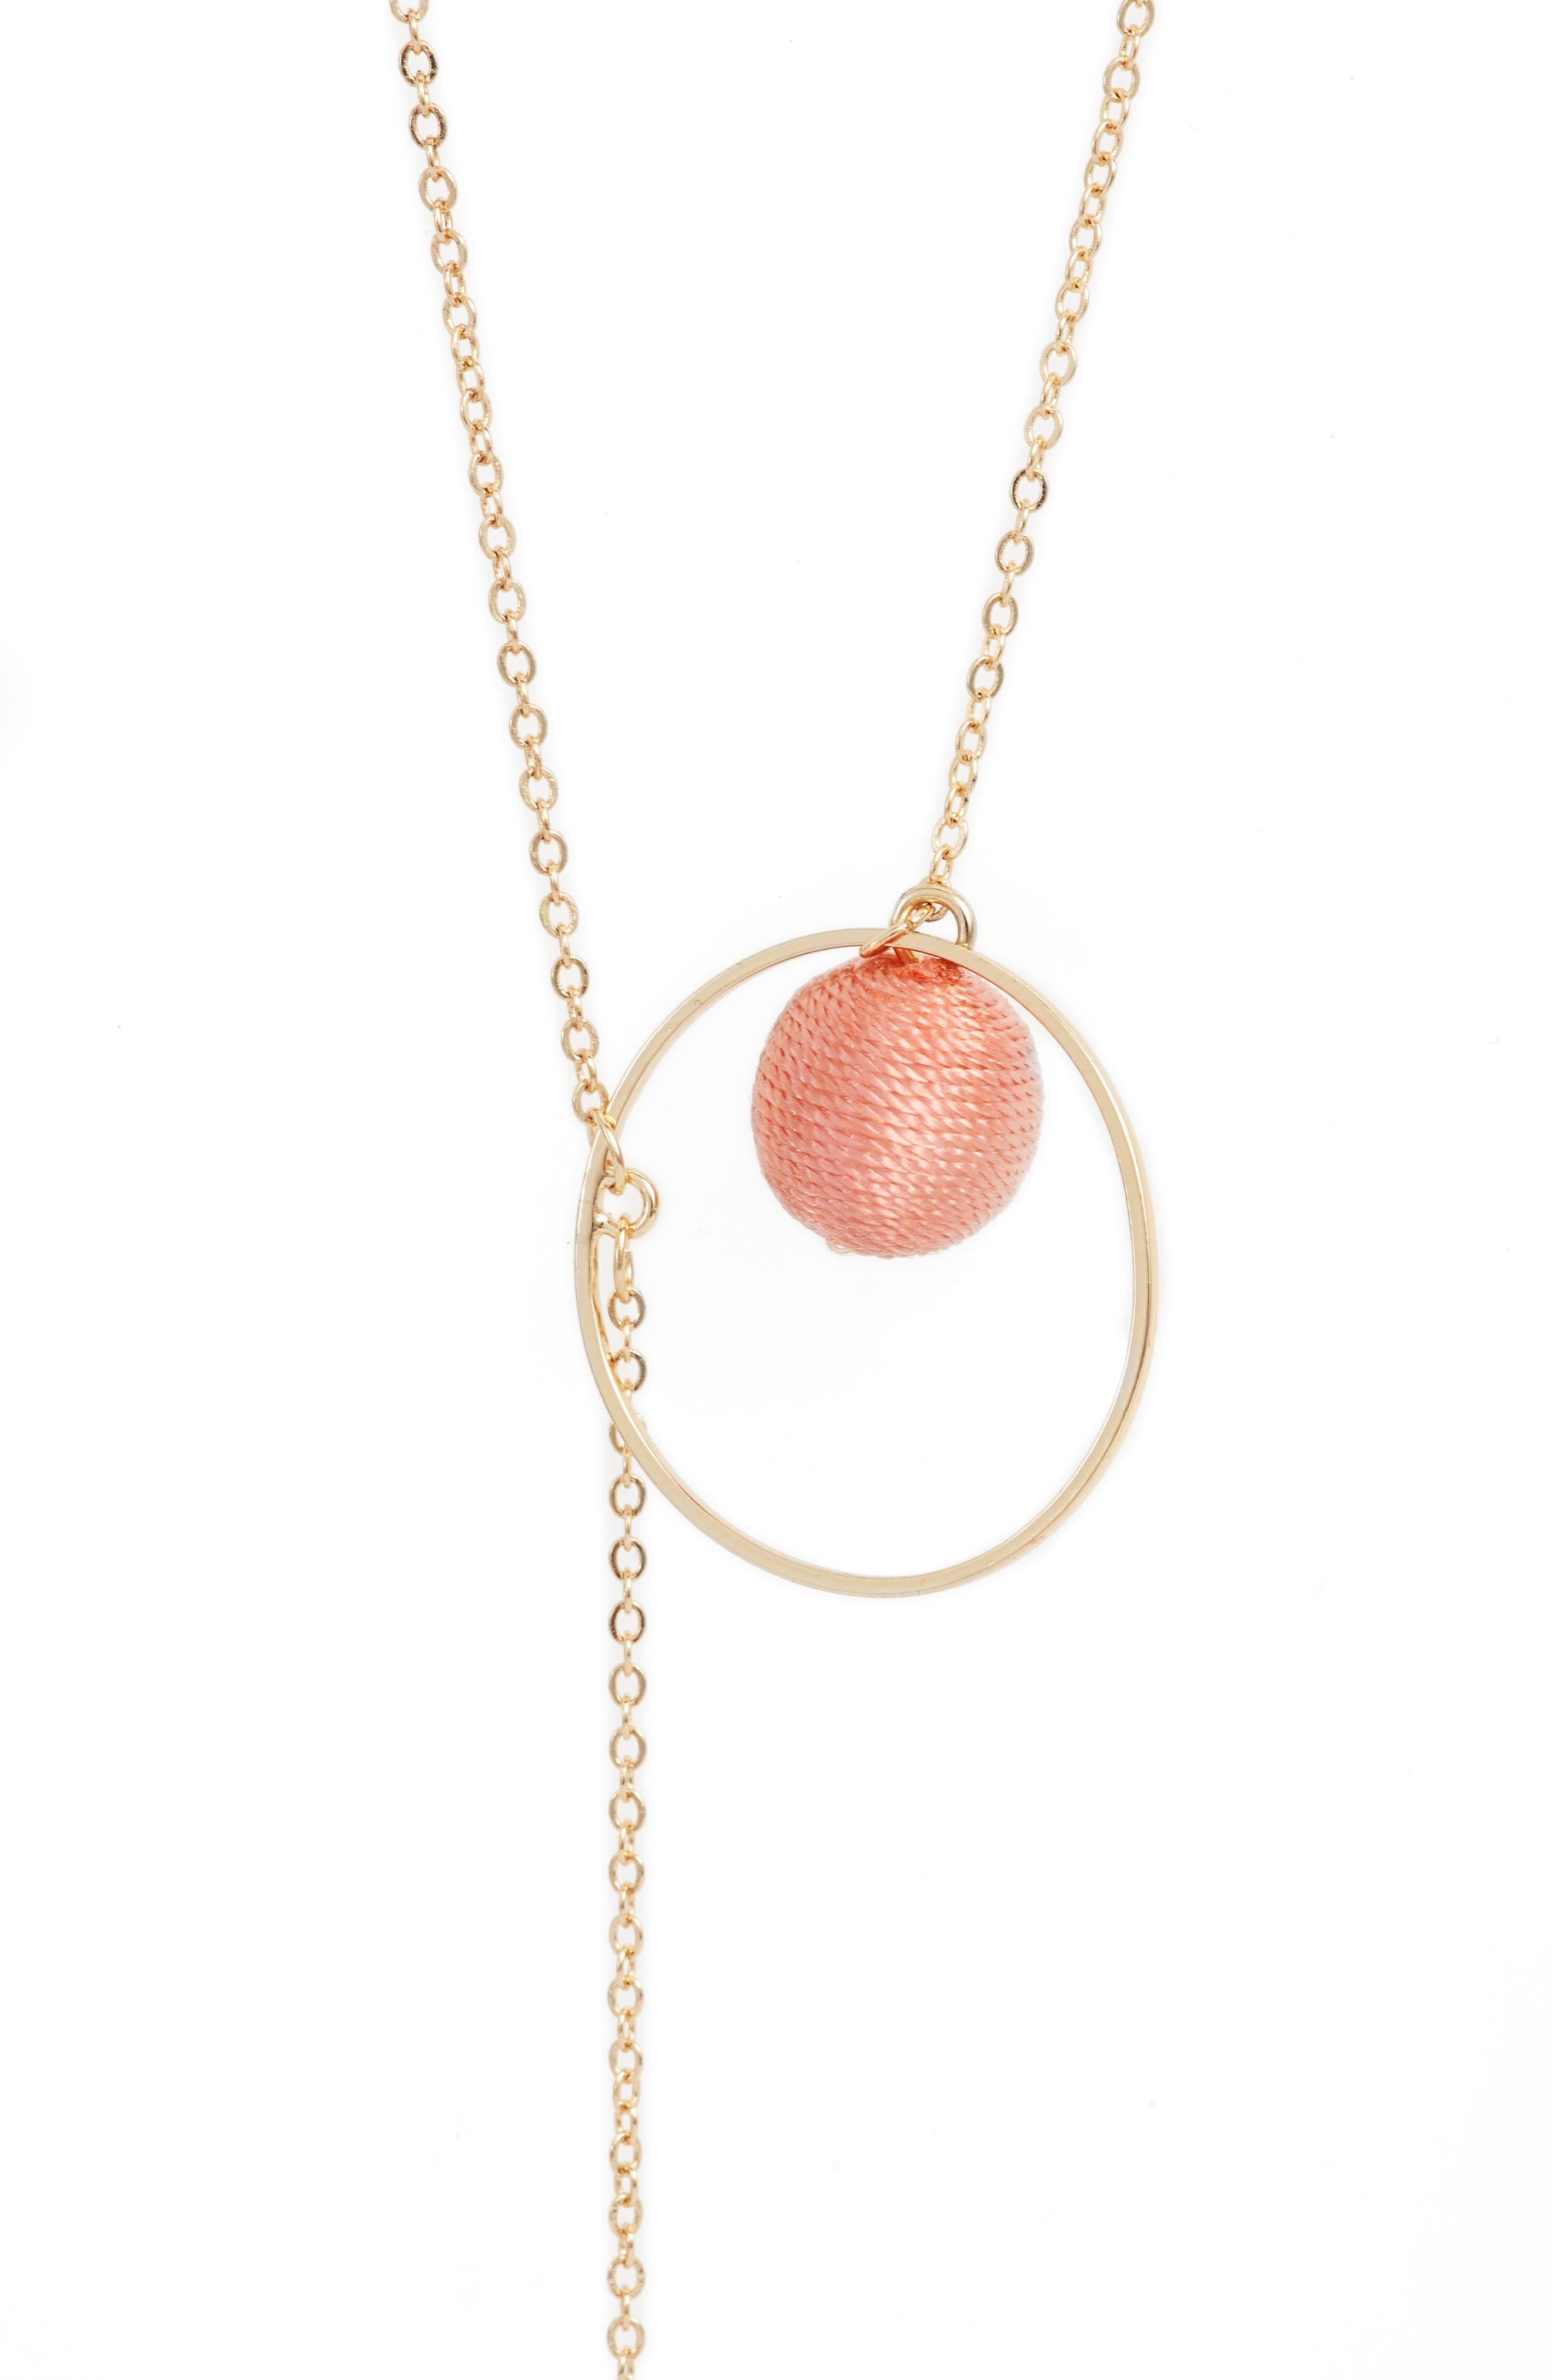 Threaded Sphere Necklace,                             Alternate thumbnail 2, color,                             Pink/ Gold